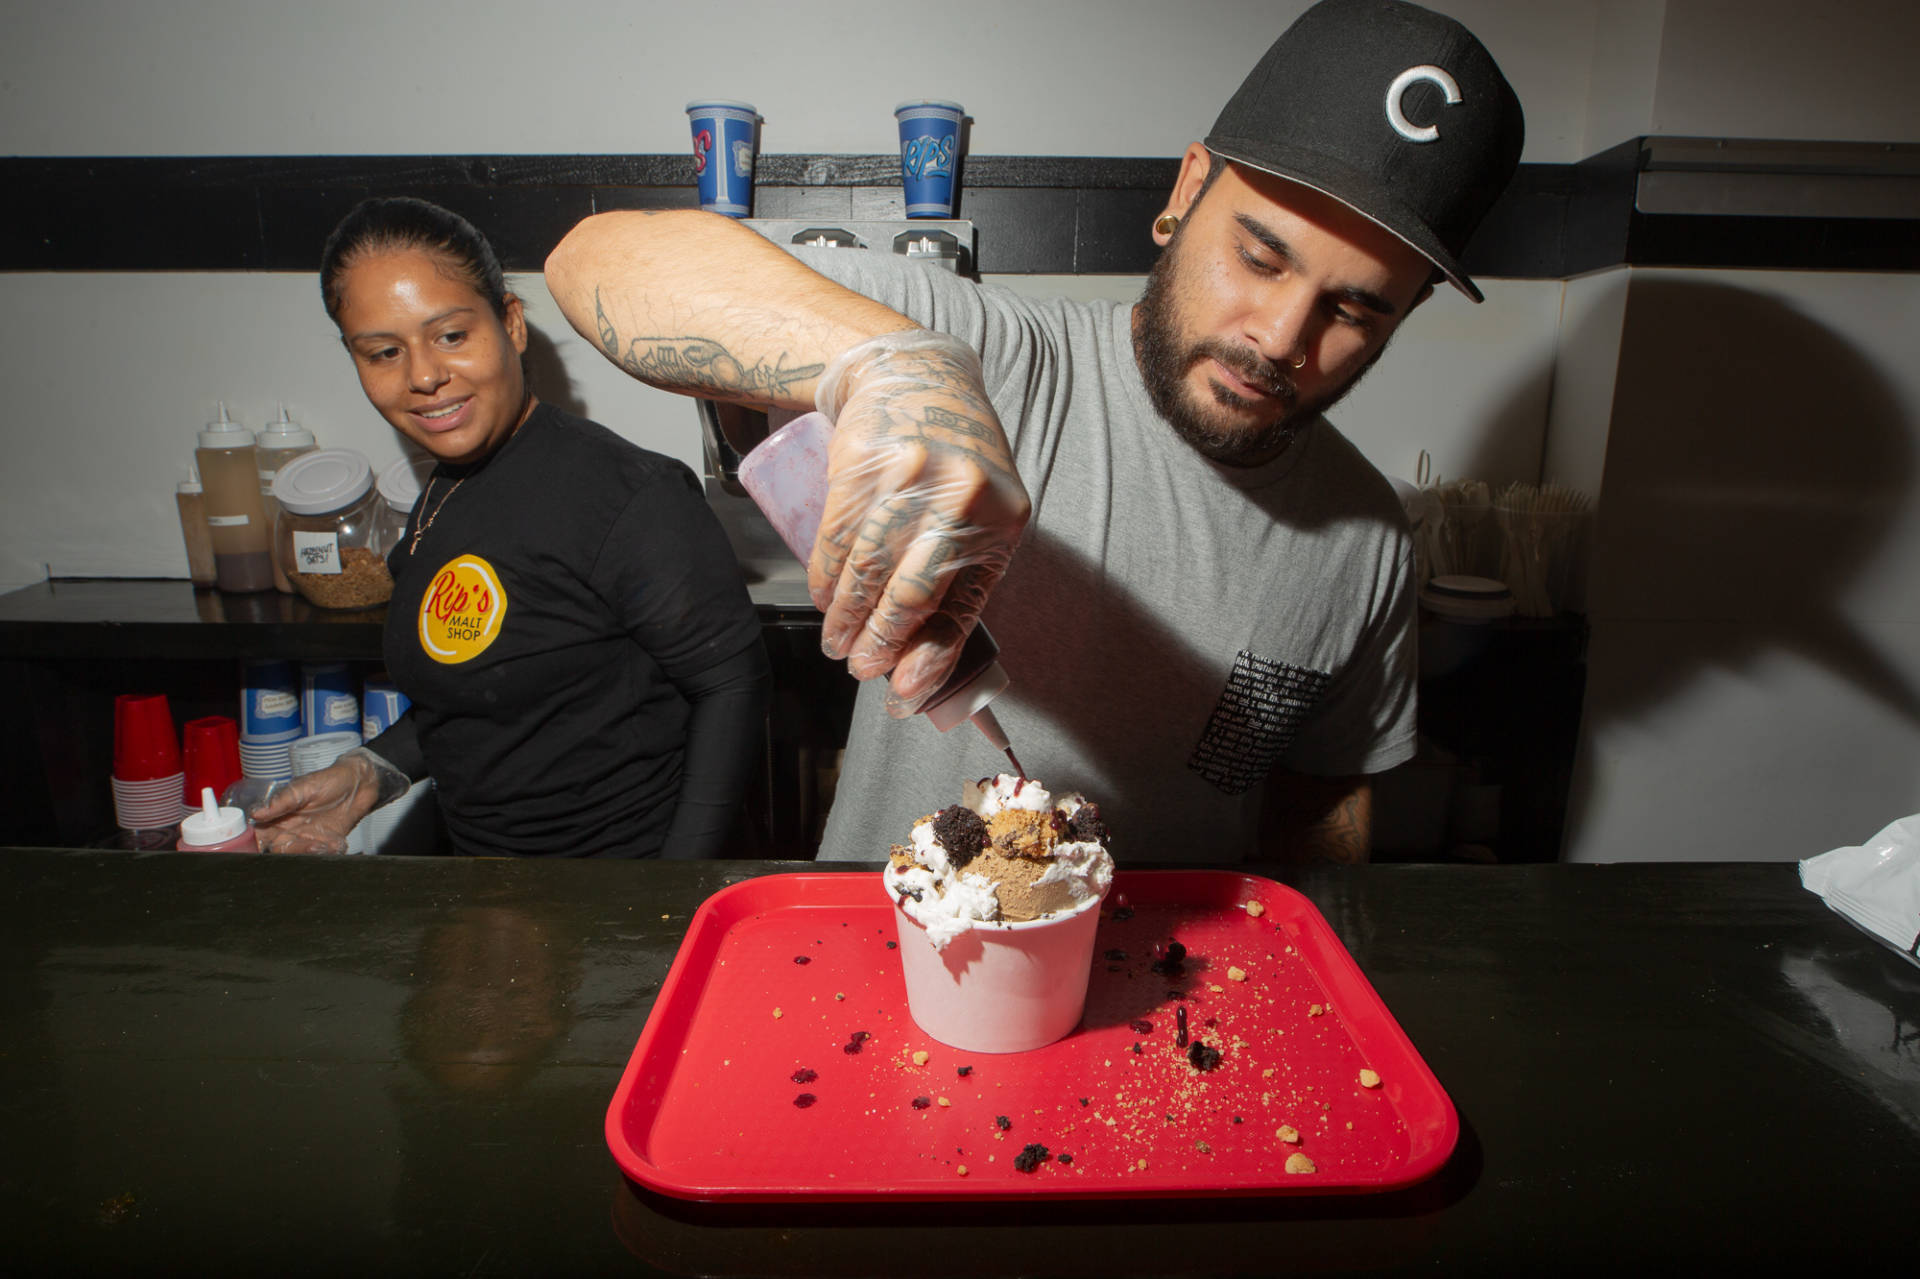 Castro makes a vegan coffee ice cream sundae at Rip's.